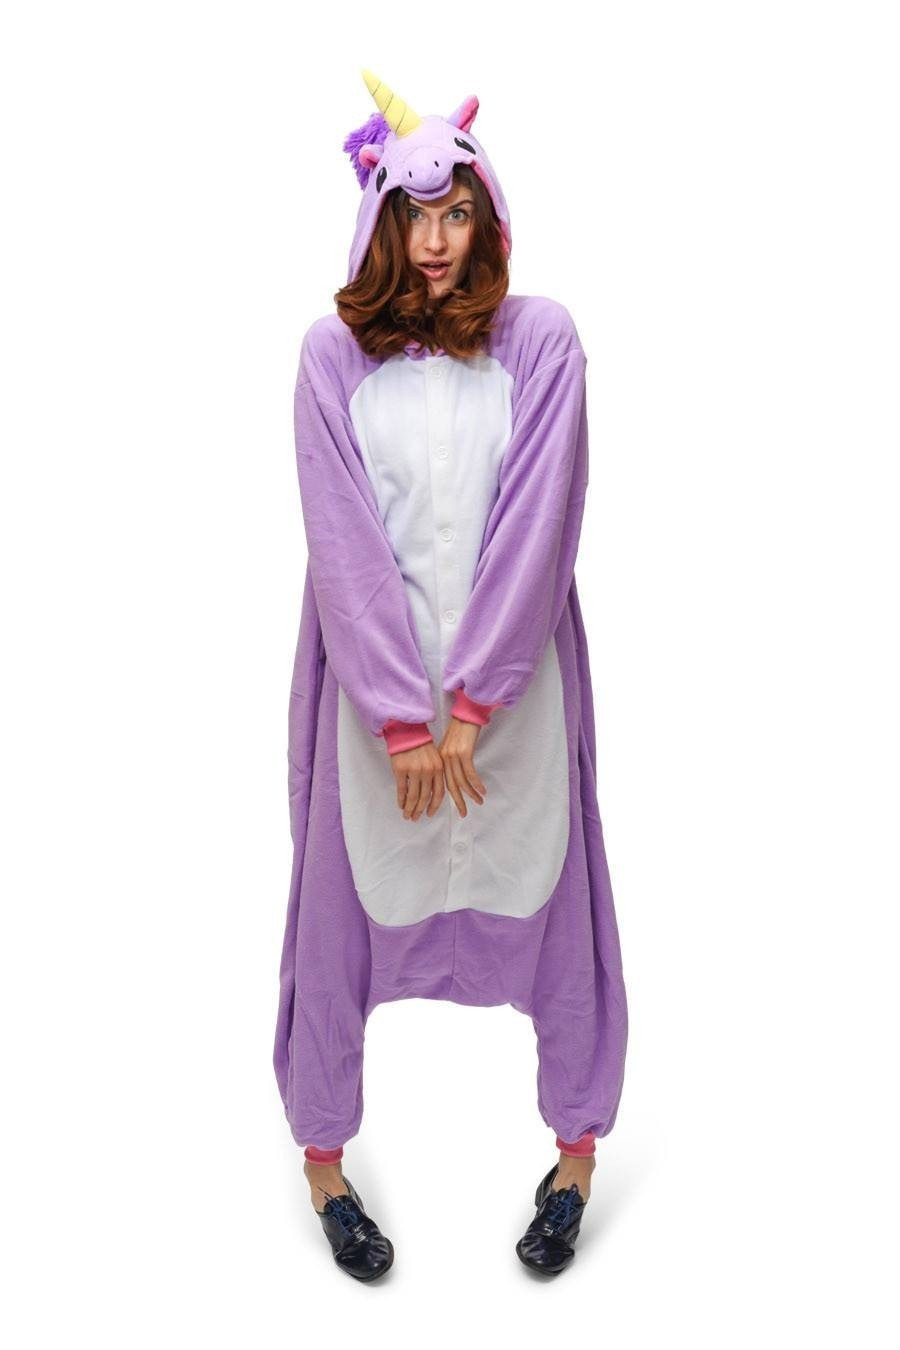 purple-unicorn-kigurumi-onesie-sazac-23595097677_2048x2048